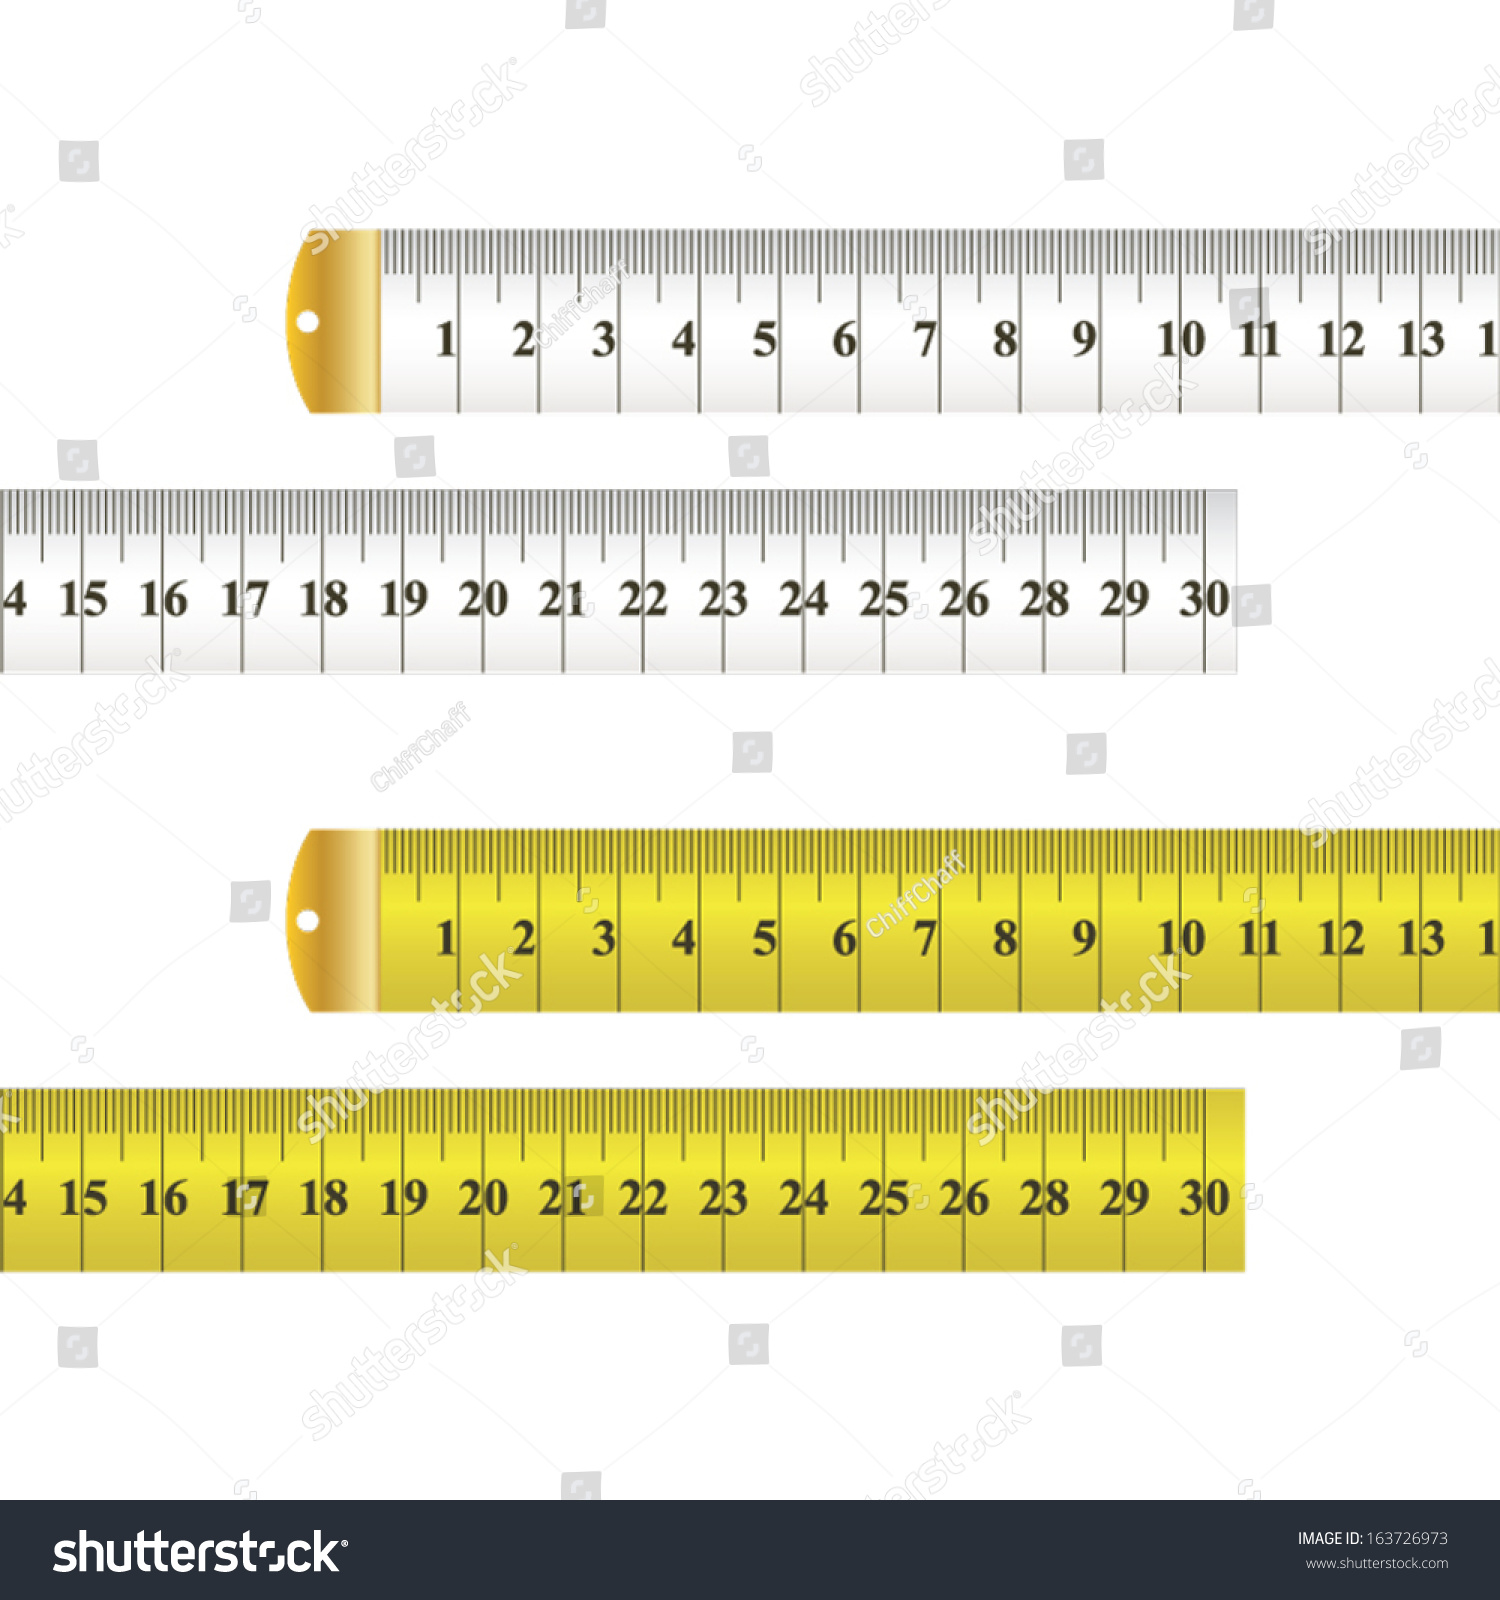 tape measure vector. tape measure vector, yellow and white, centimeters millimeters vector